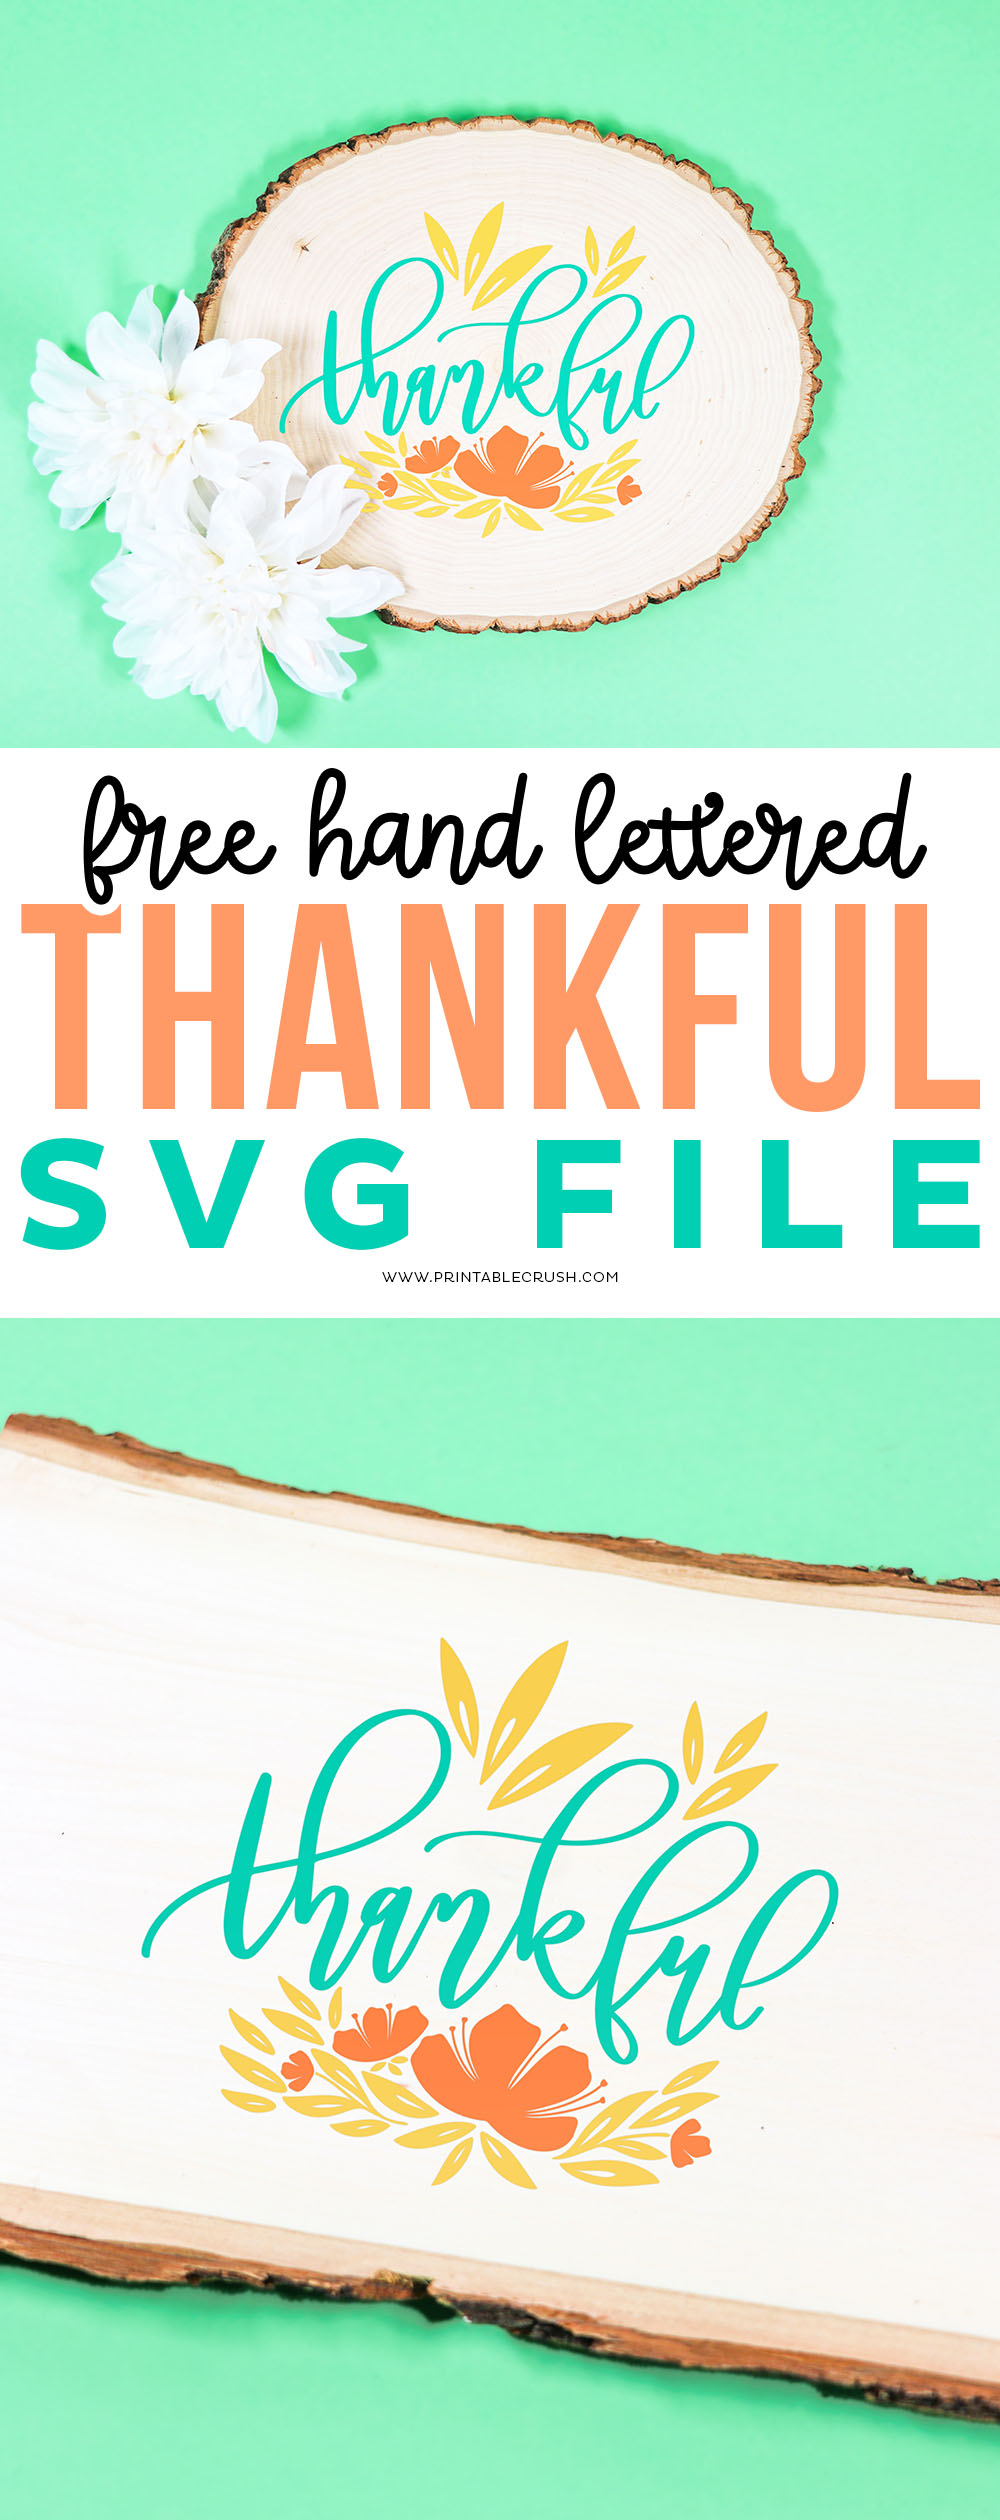 42+ Be Thankful With Wheat Svg Dxf Eps Ai Jpg Png Image